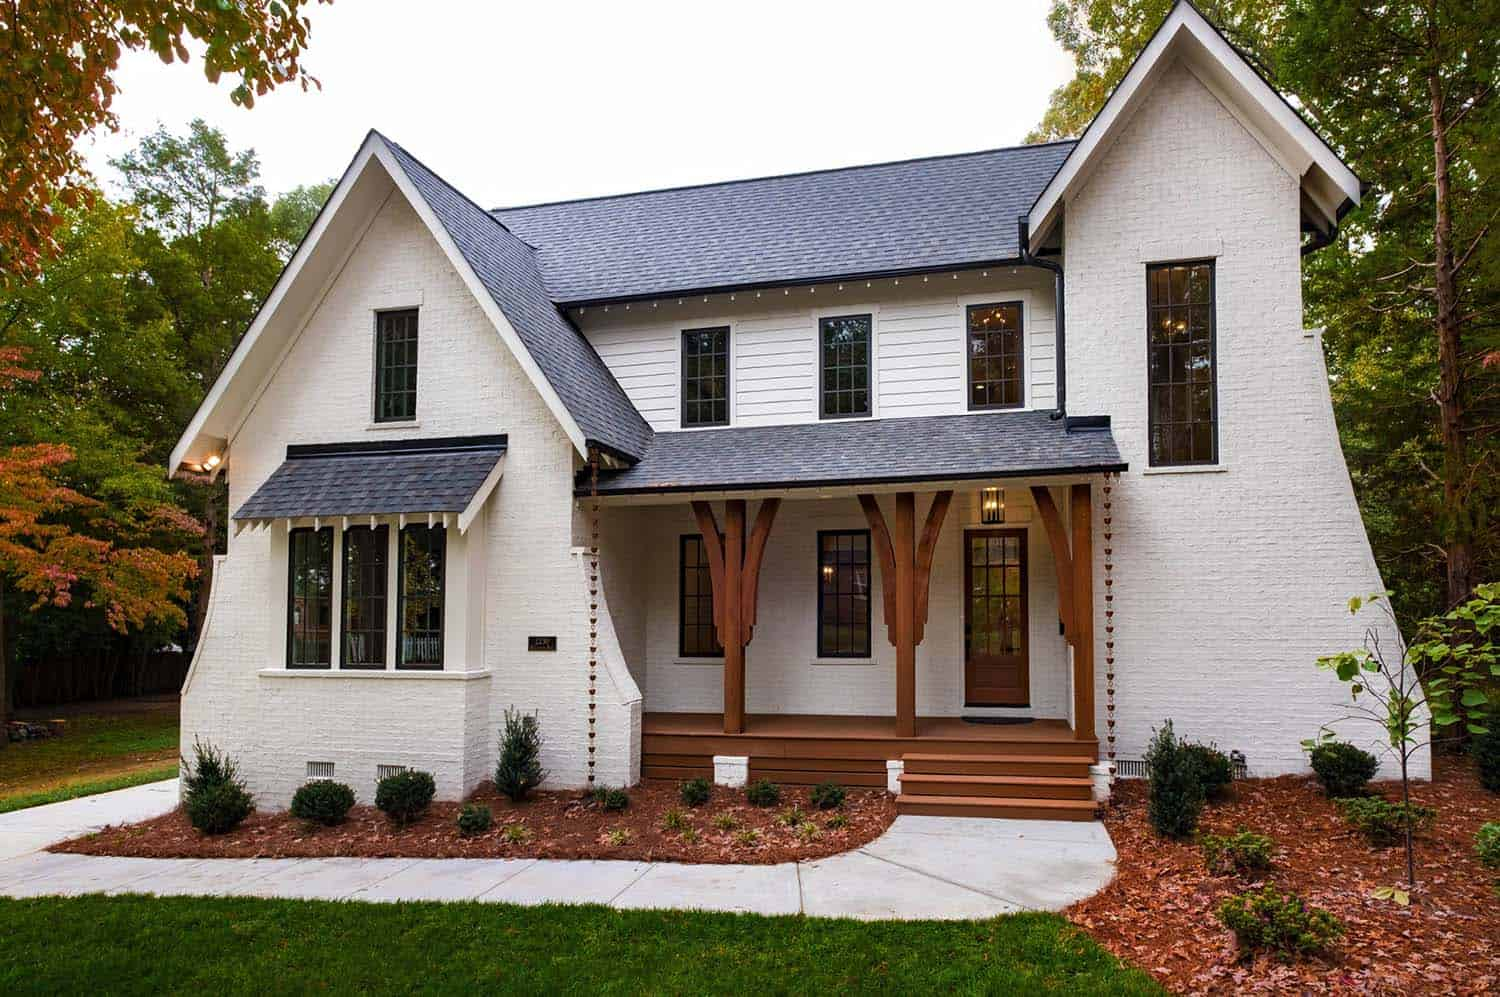 Traditional-Style-Home-Pike-Properties-01-1-Kindesign.jpg